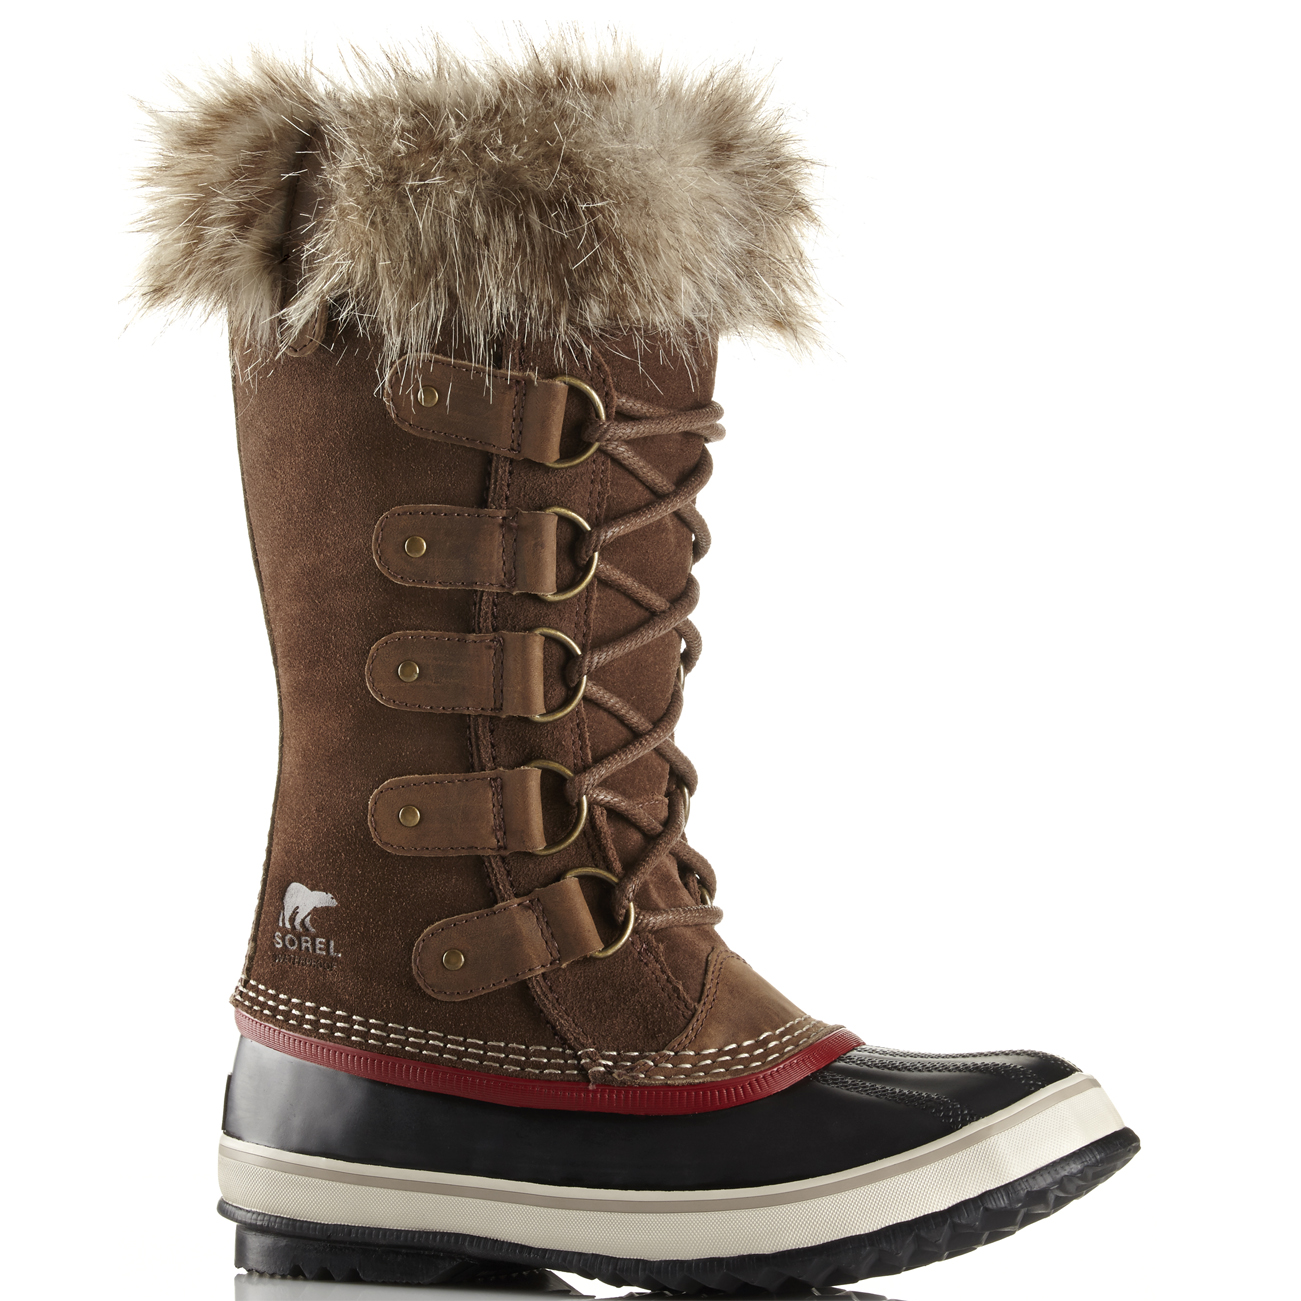 Ladies Sorel Joan Of Arctic Lace Up Rain Snow Fur Lined Hiker Boots All Sizes